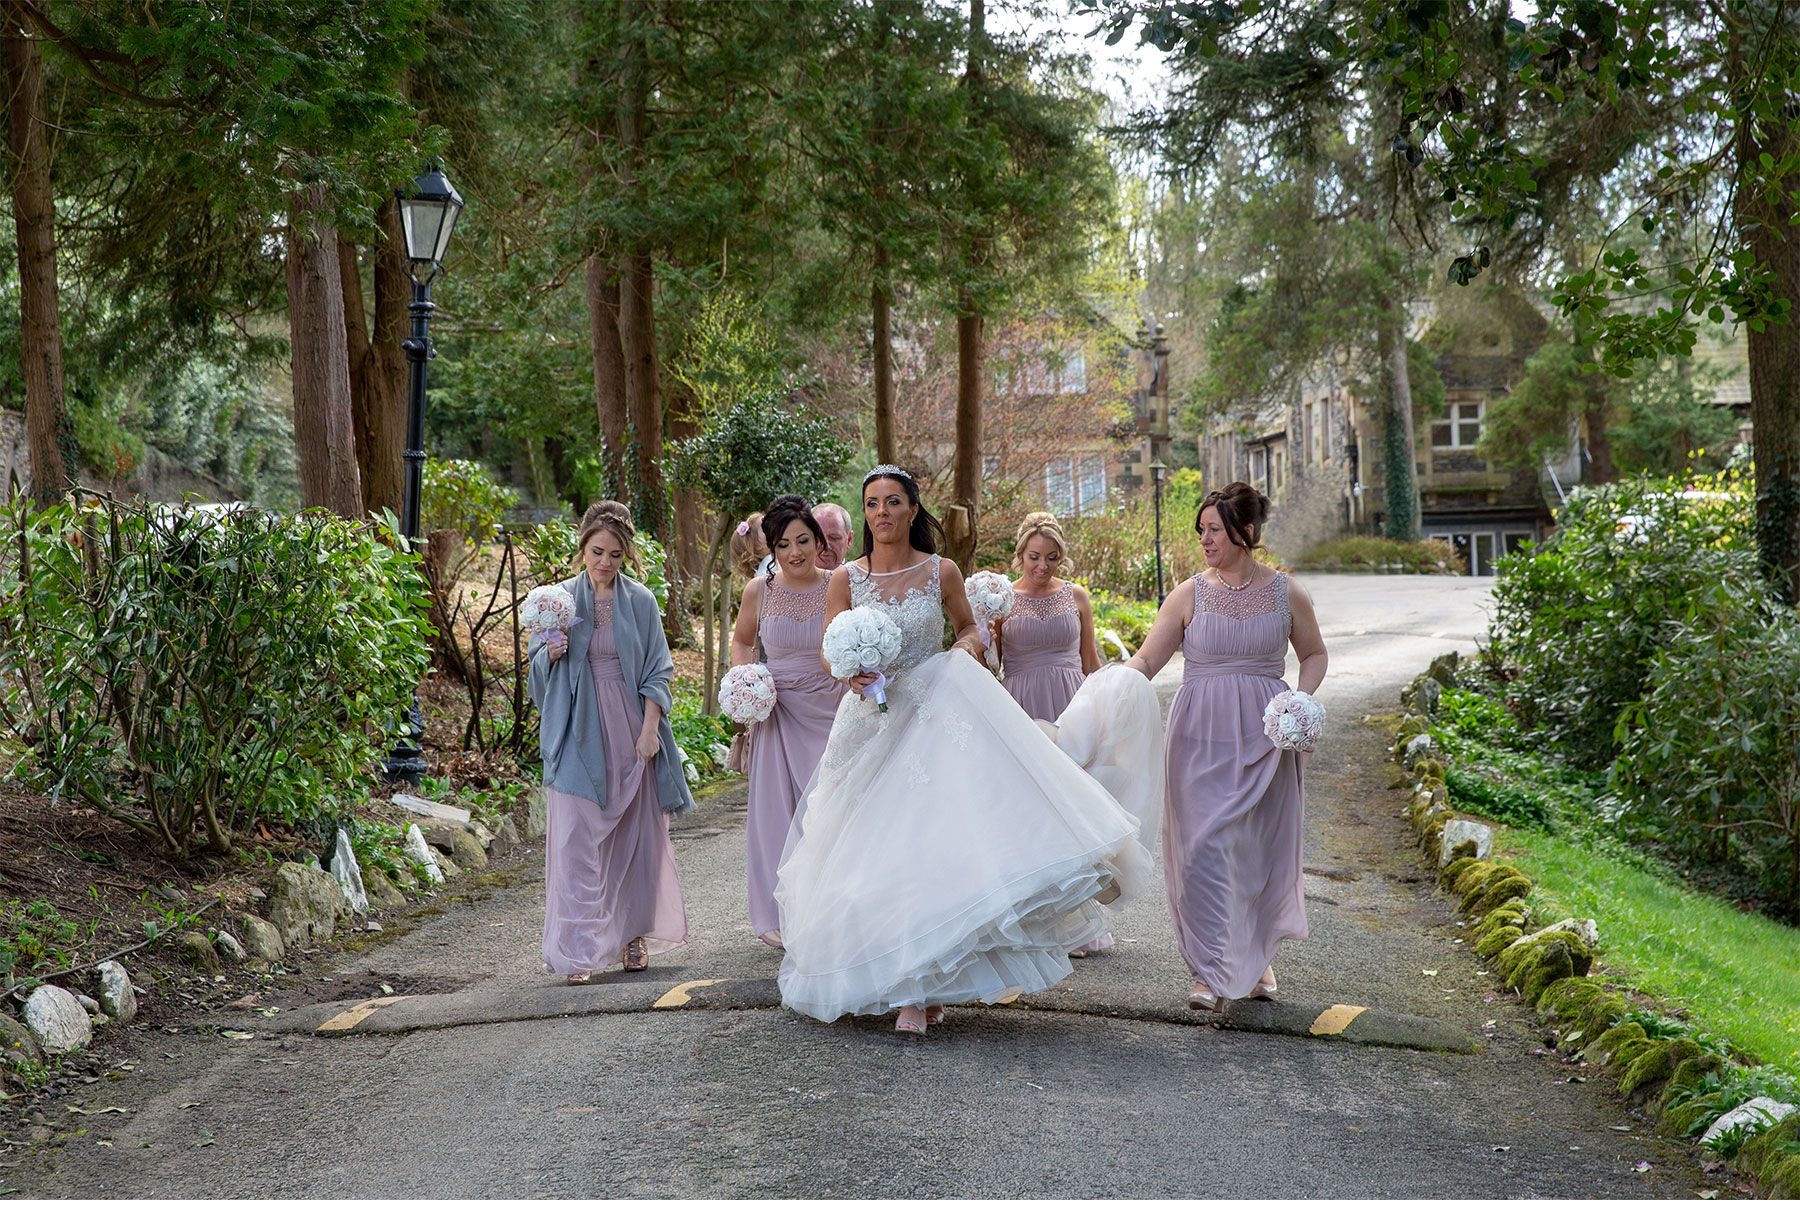 Bride and the bridesmaids walking down the driveway